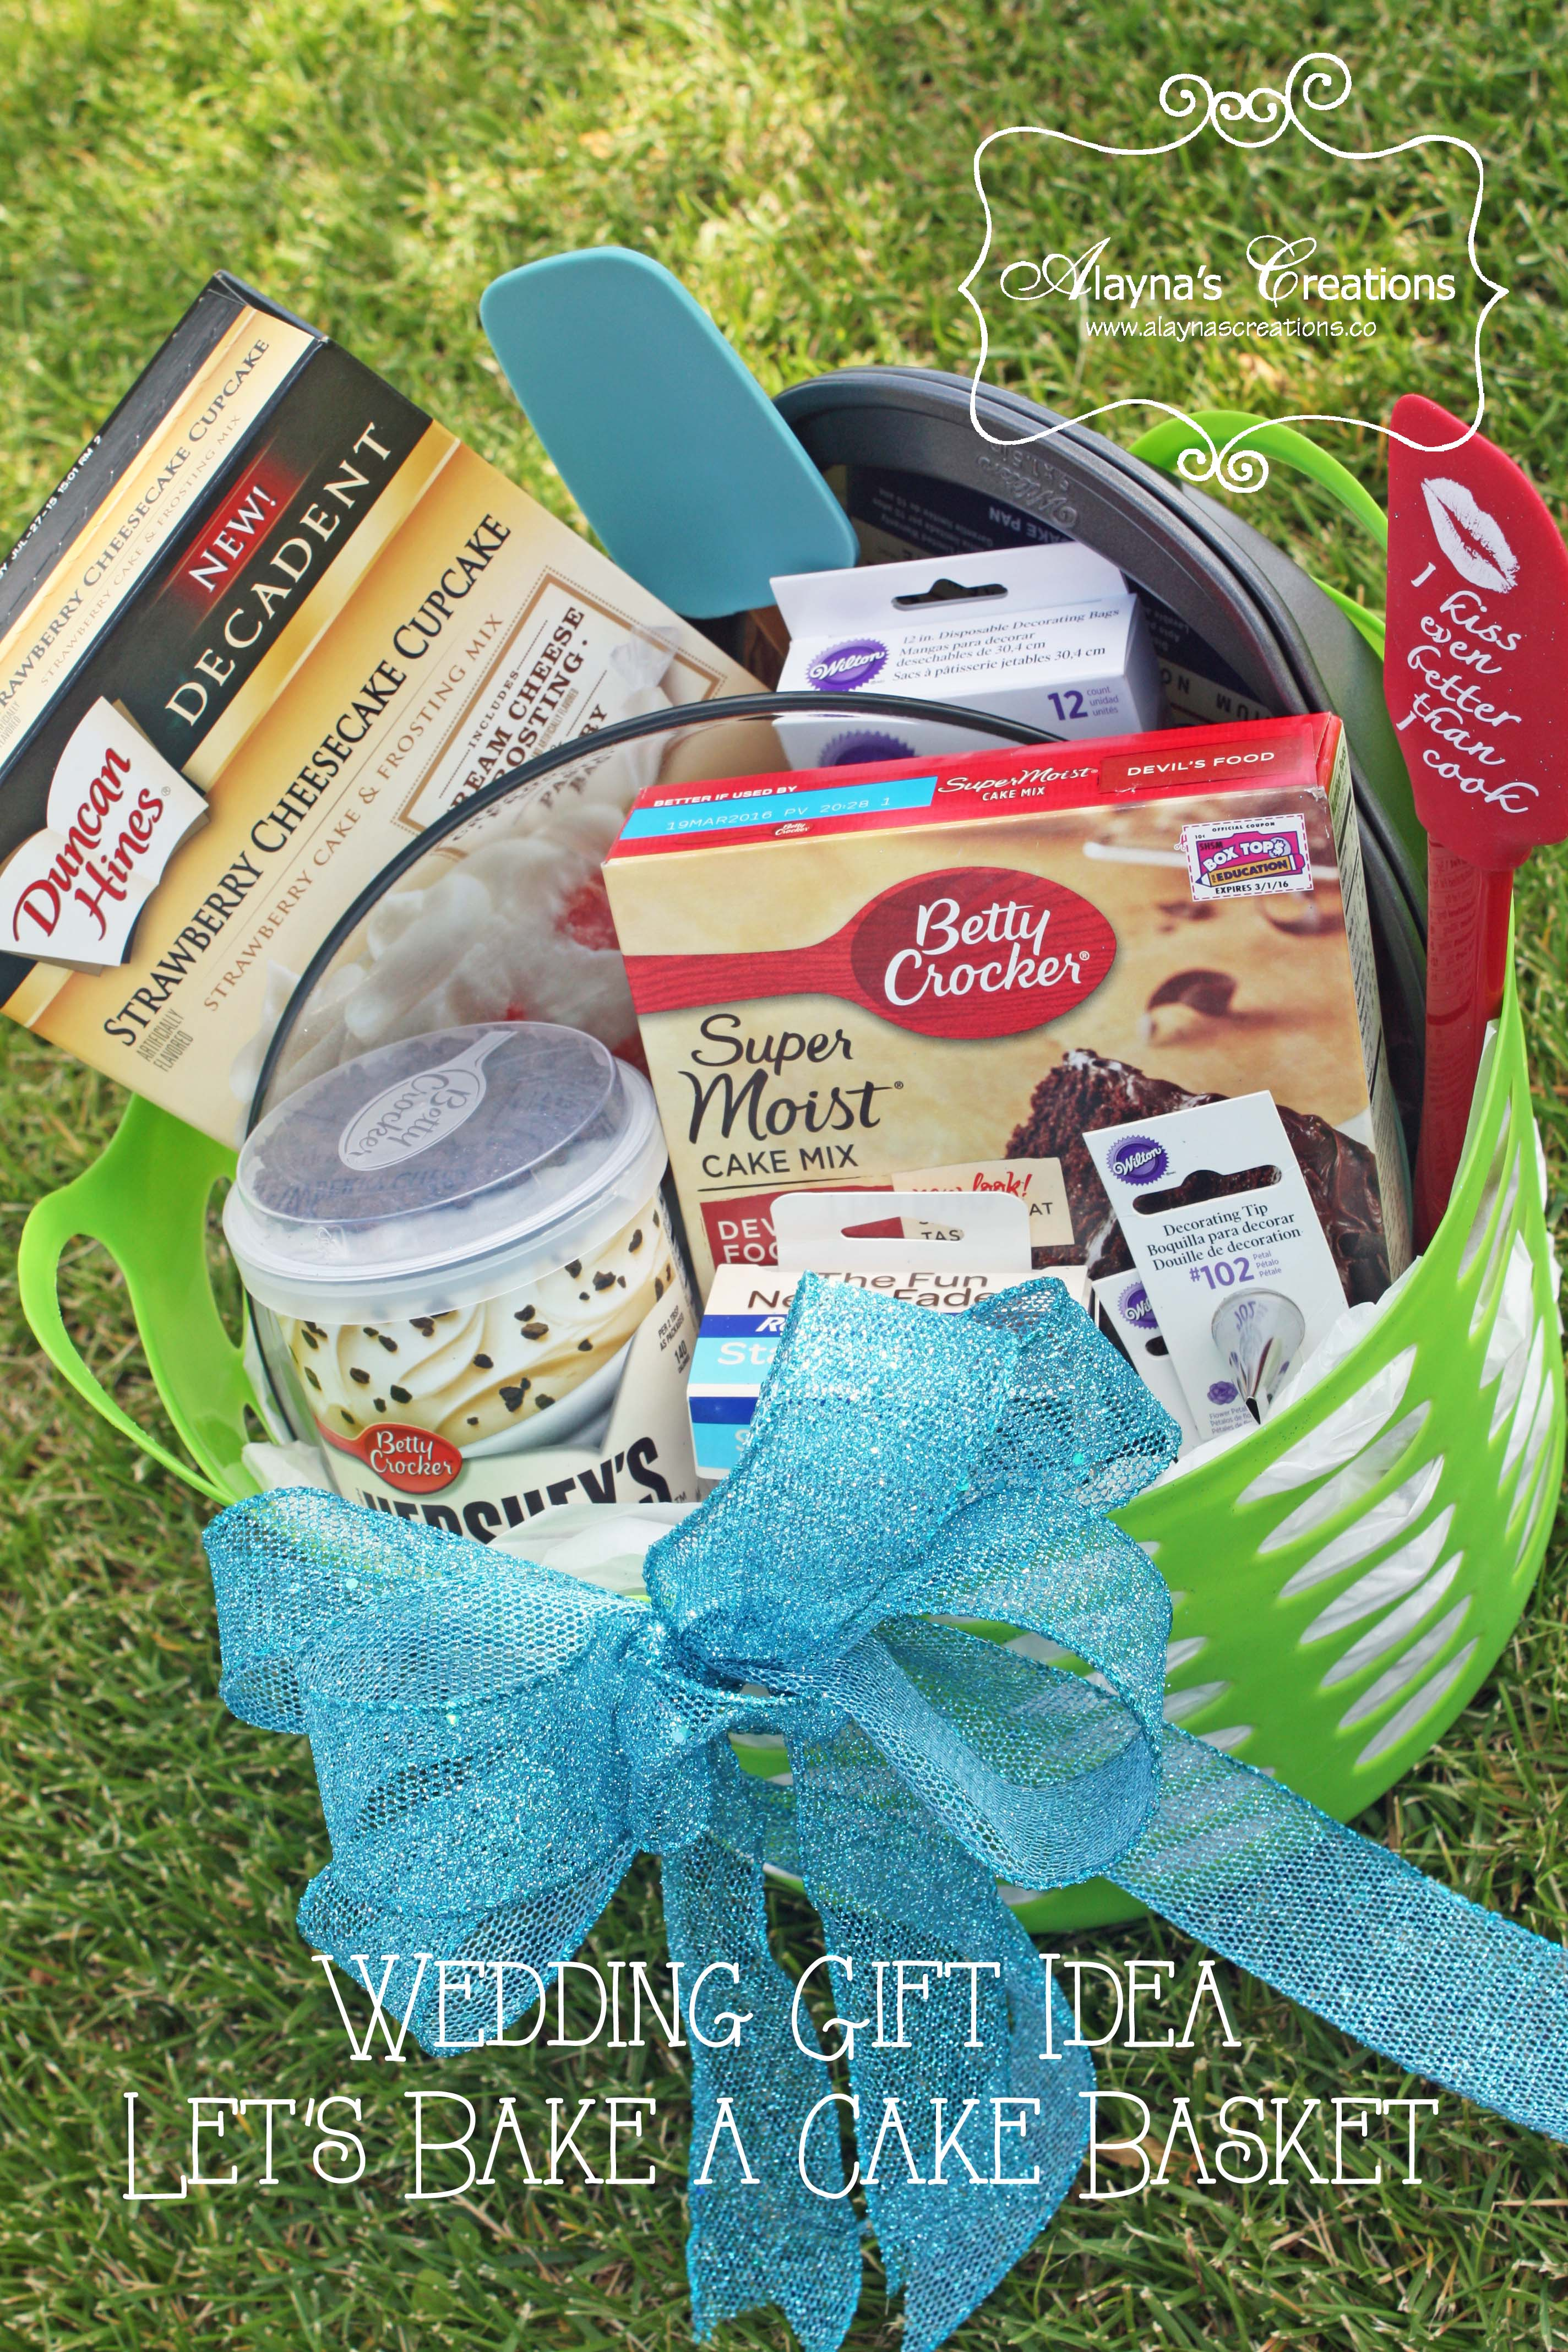 Cake Baking Supplies Gift Basket is perfect gift idea for weddings and ...